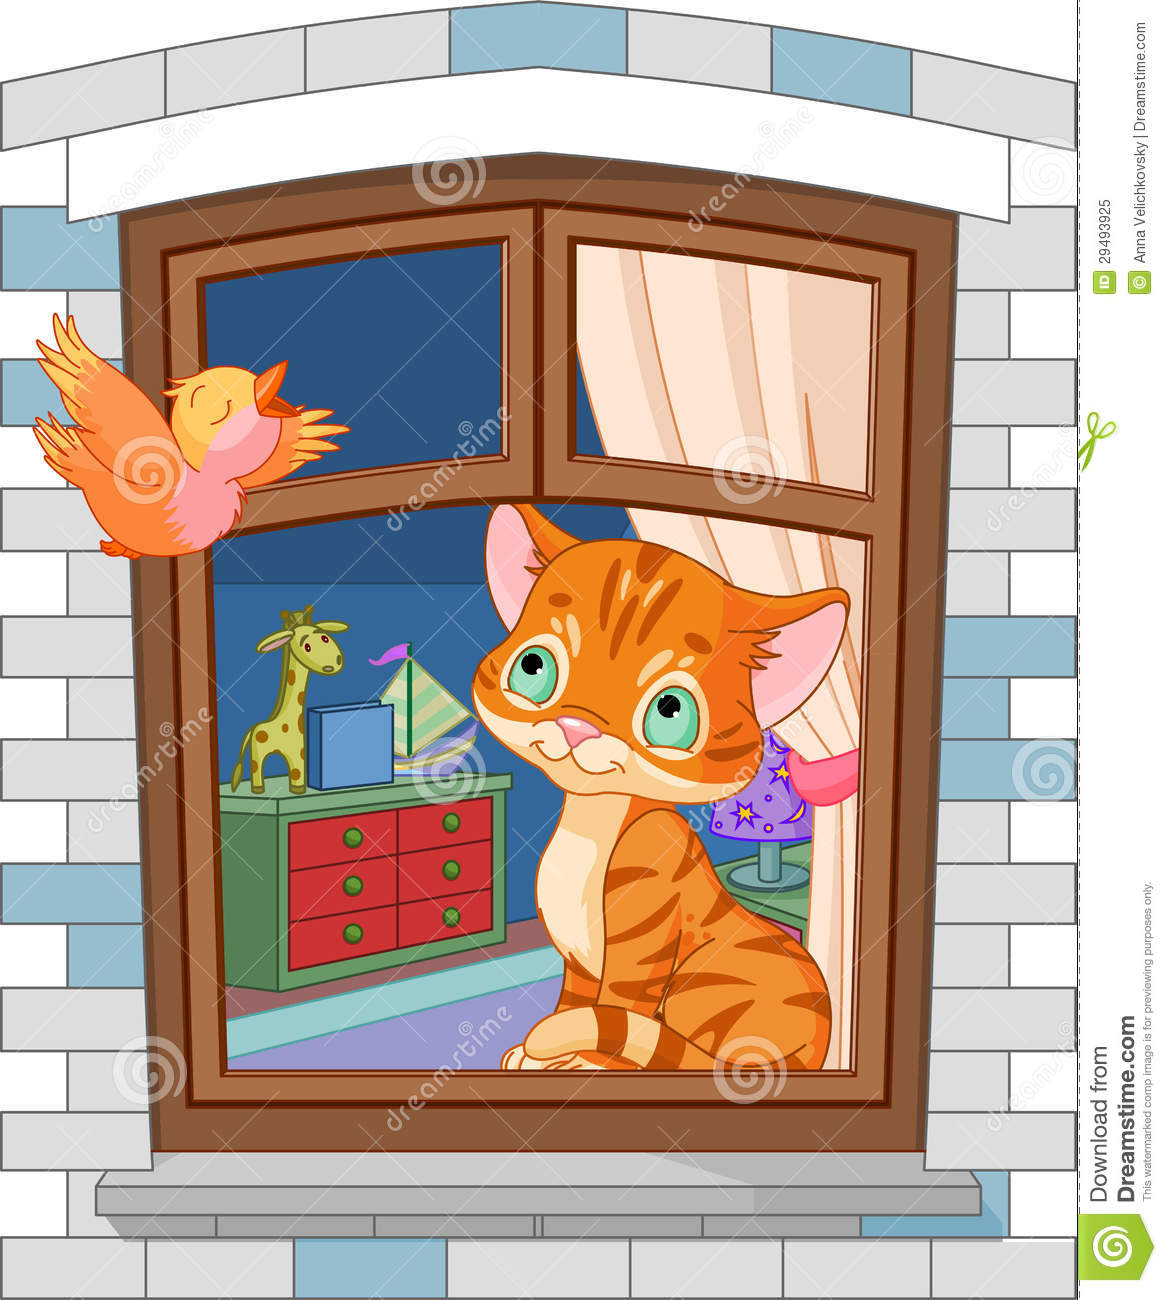 Cute kitten sitting on the window royalty free stock photo for 2 little birds sat on my window